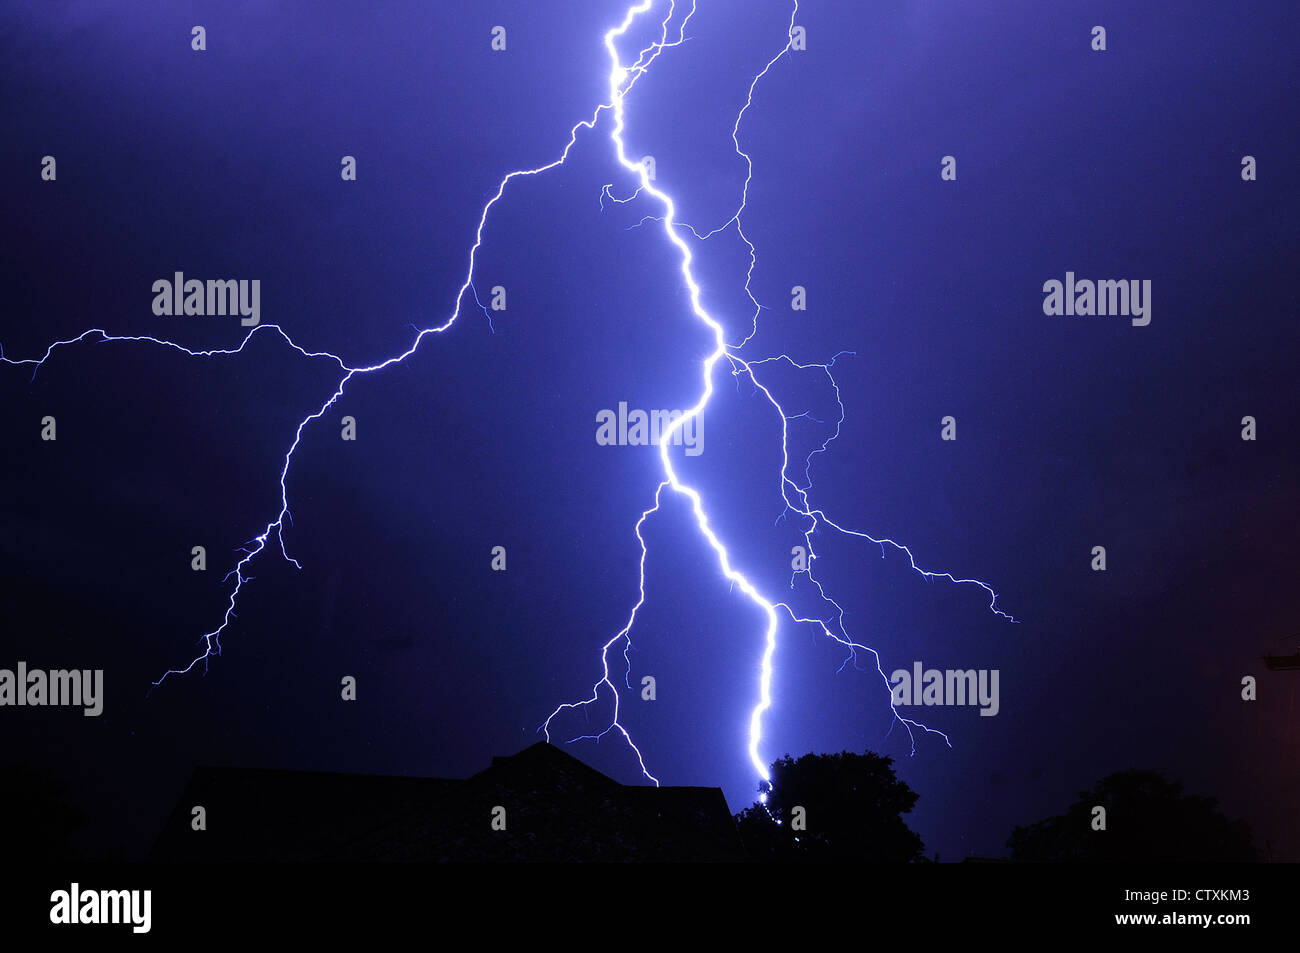 Night shot with big thunderstorm at the starry sky. - Stock Image